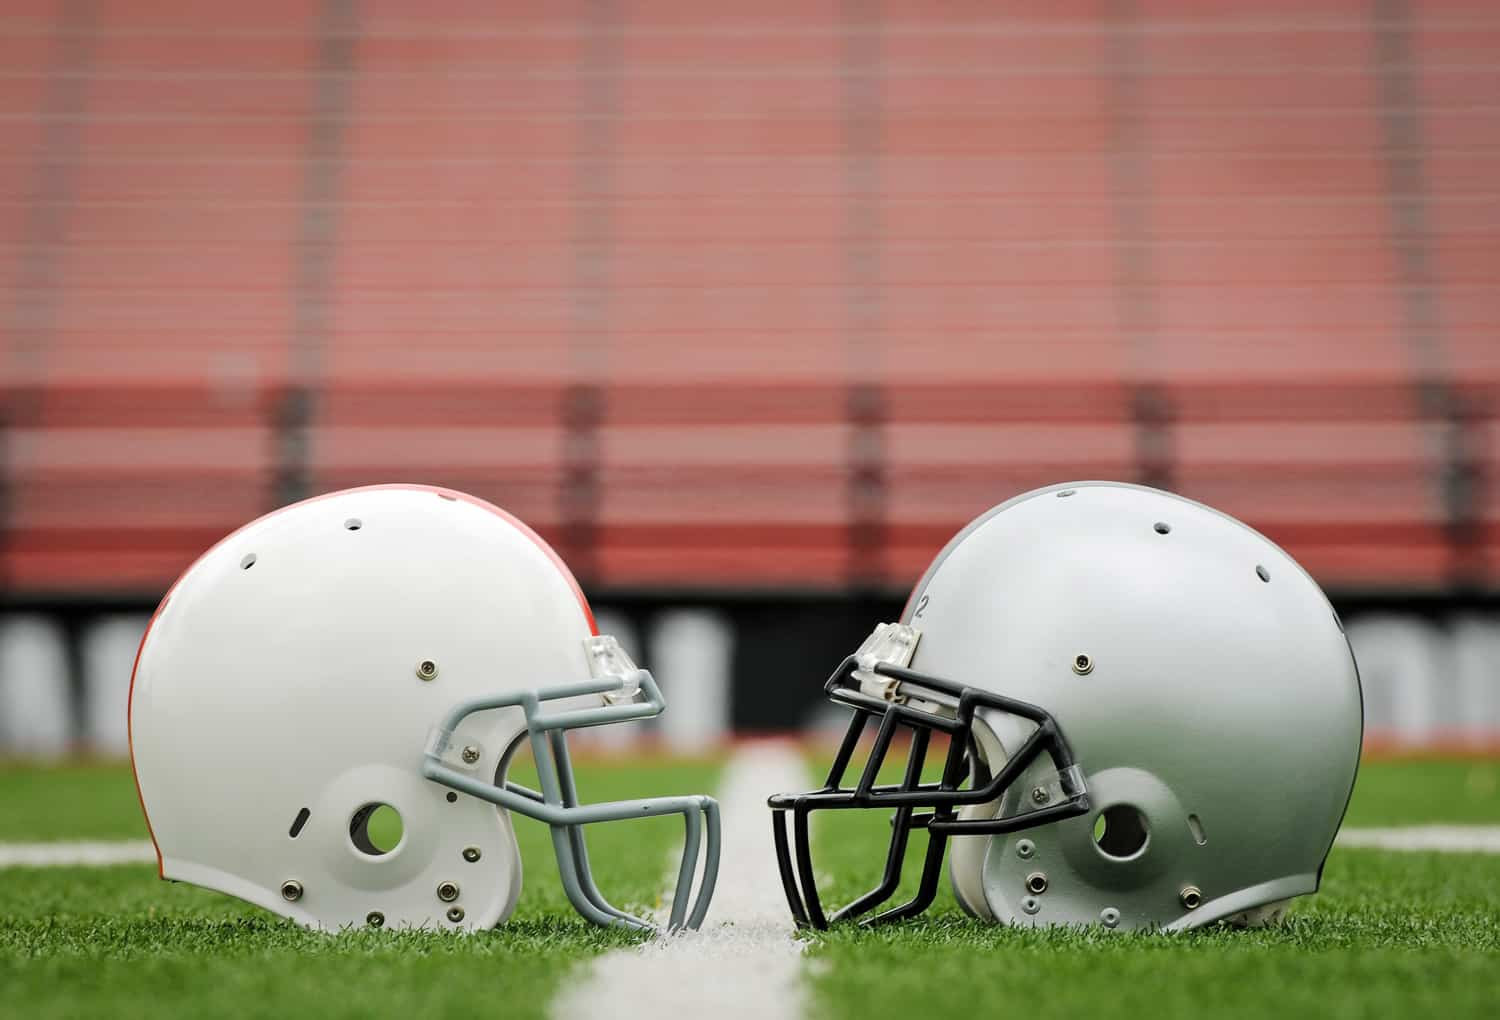 Stock photo of to football helmets sitting face to face on field